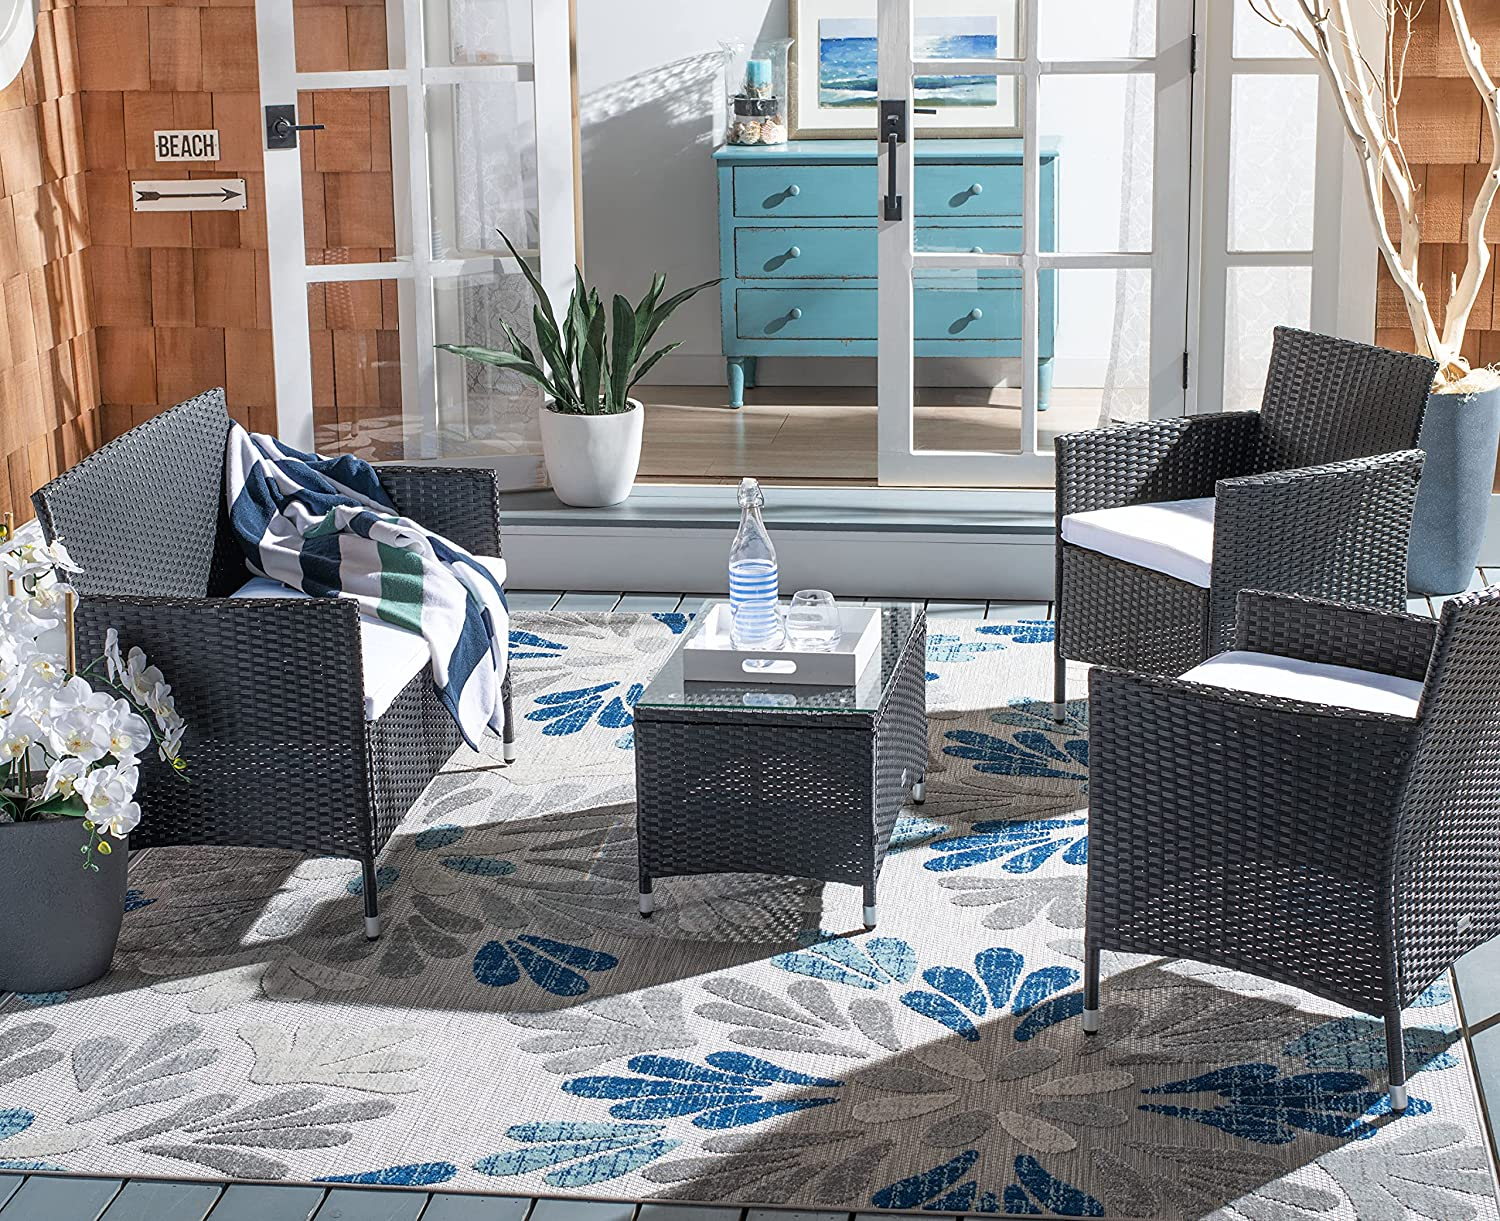 Safavieh PAT7506A Collection Bandele Black and Beige 4-Piece Outdoor Living Patio Set